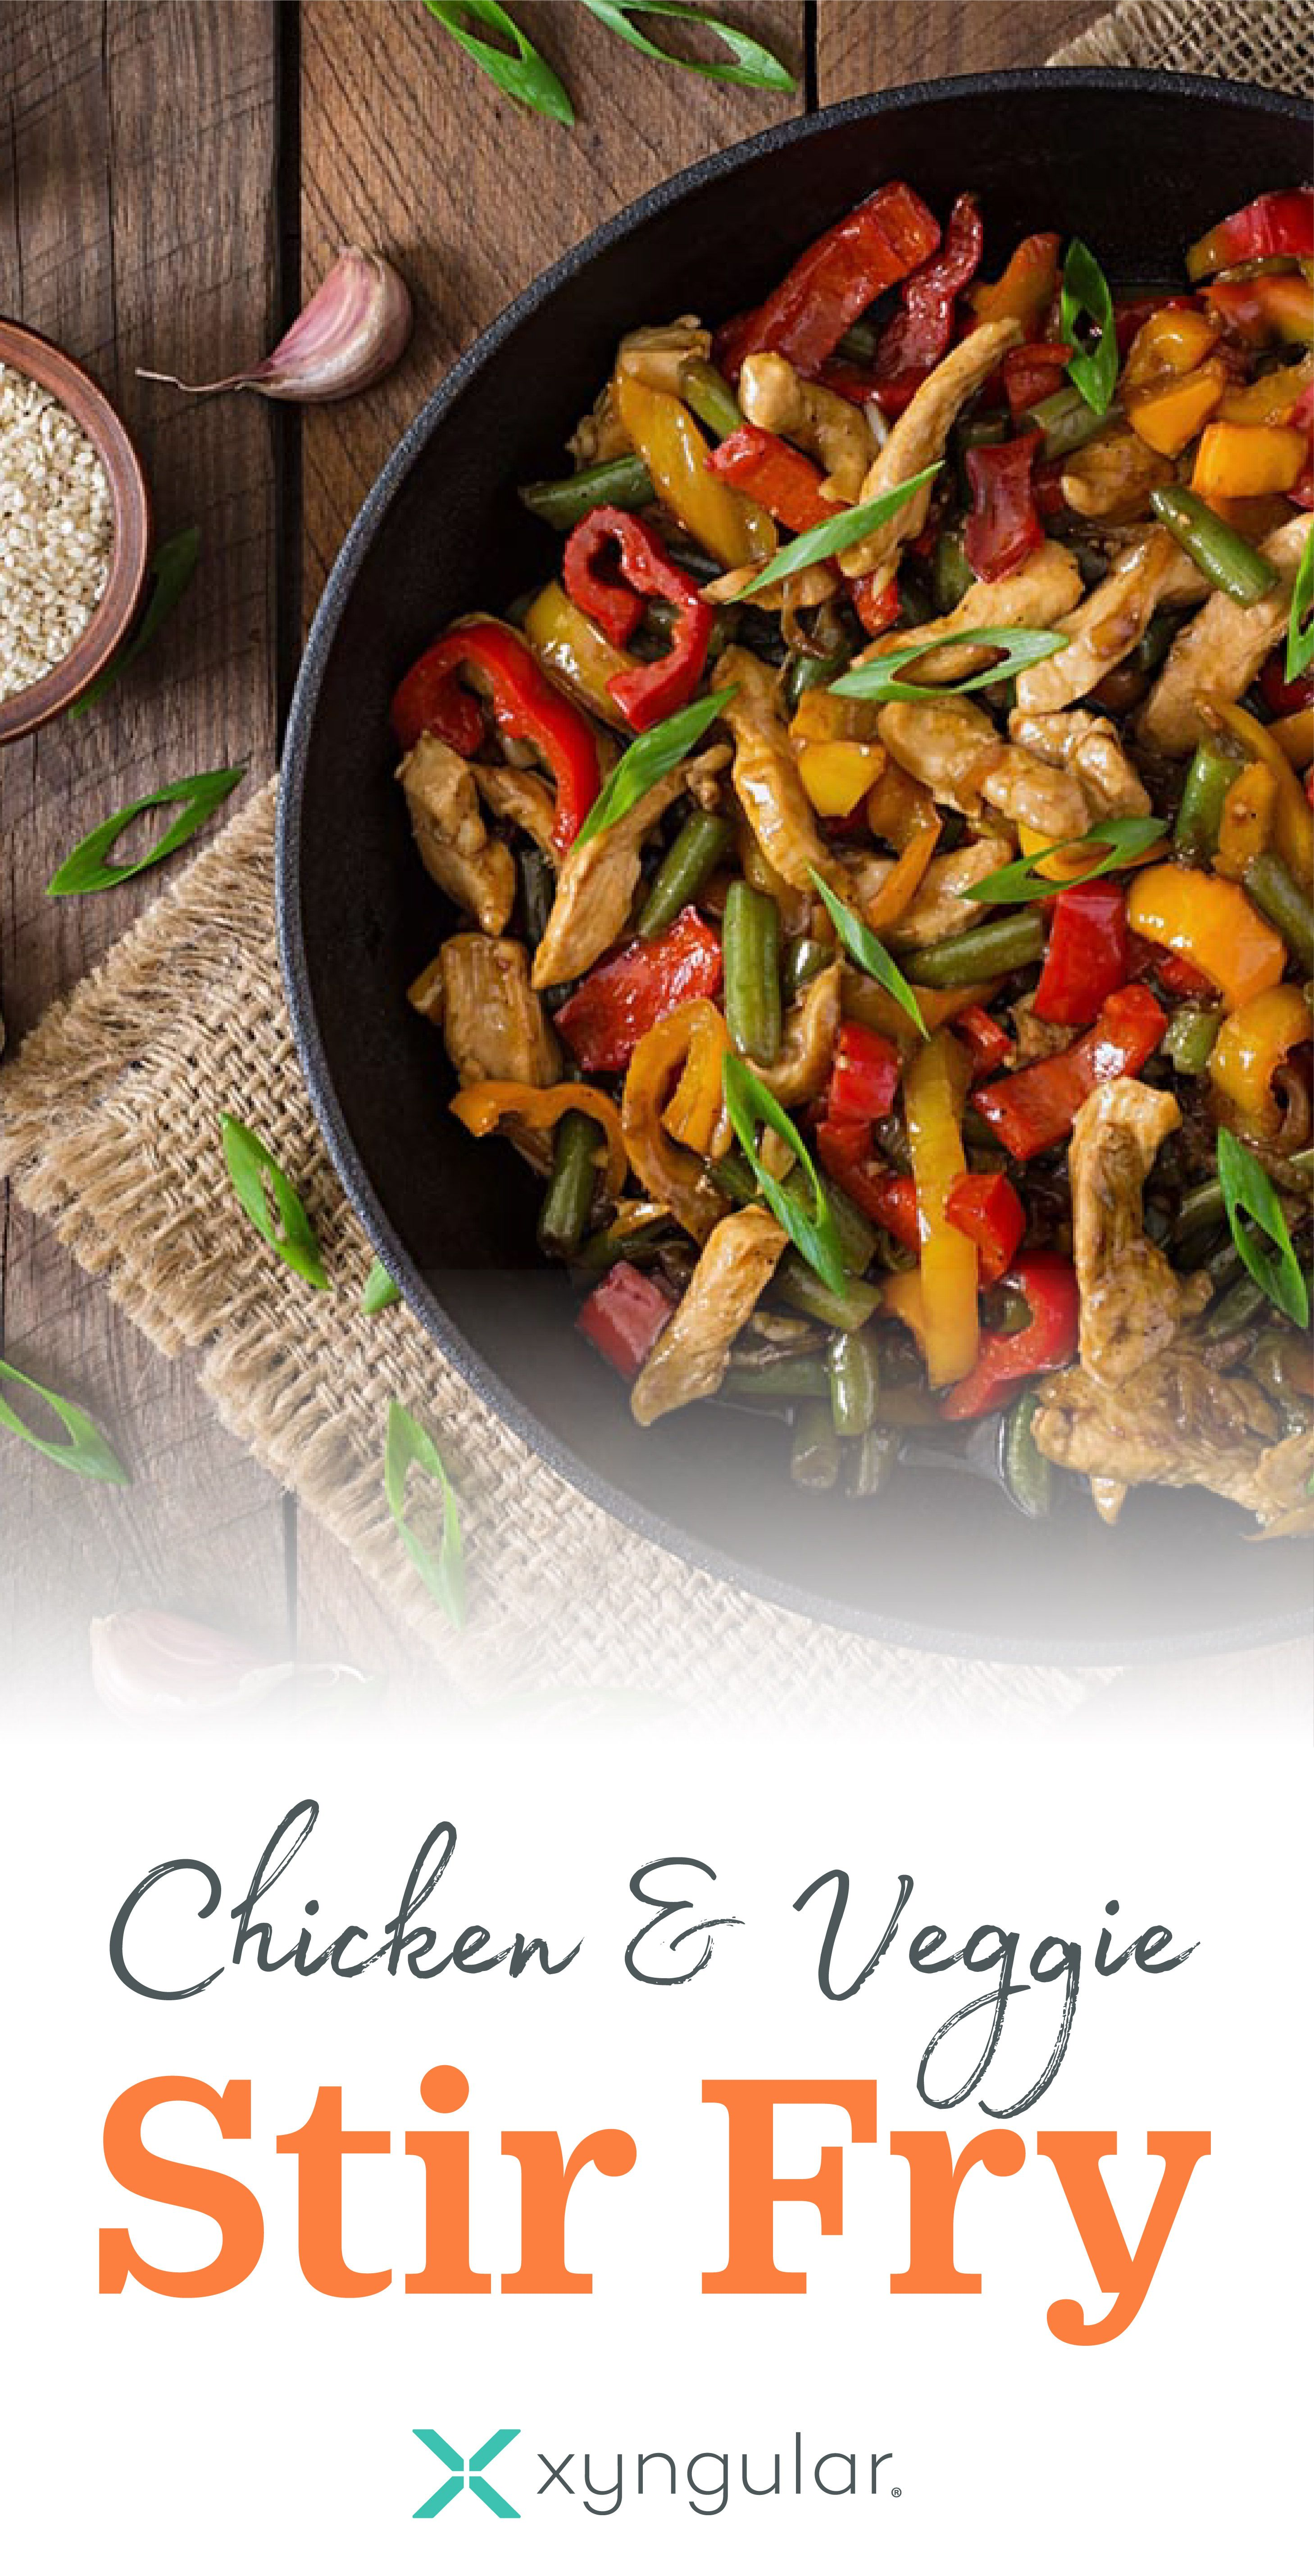 A Healthy Chicken Amp Veggie Stir Fry Recipe Approved For